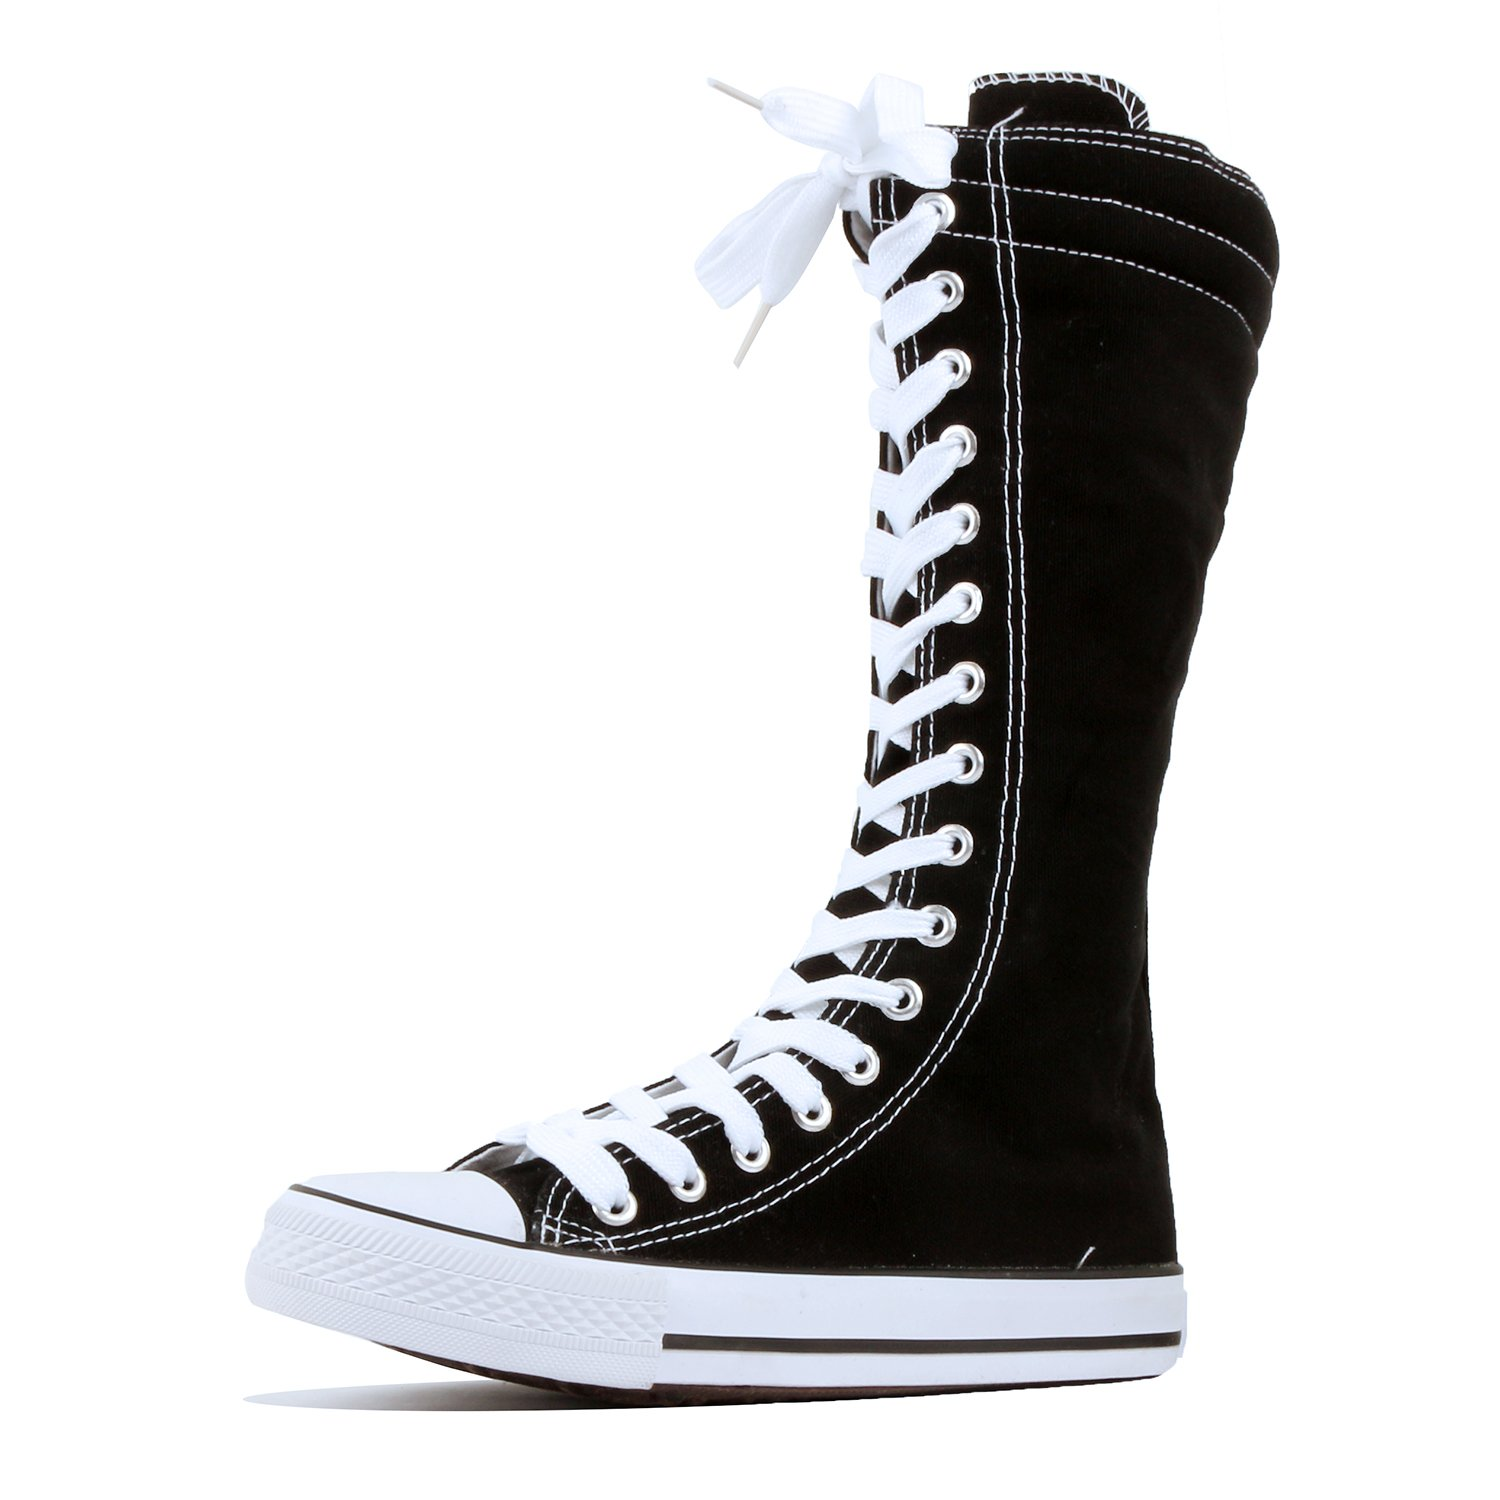 8328d30eeffaf4 DW Women s Tall Canvas Lace up Knee High Sneakers